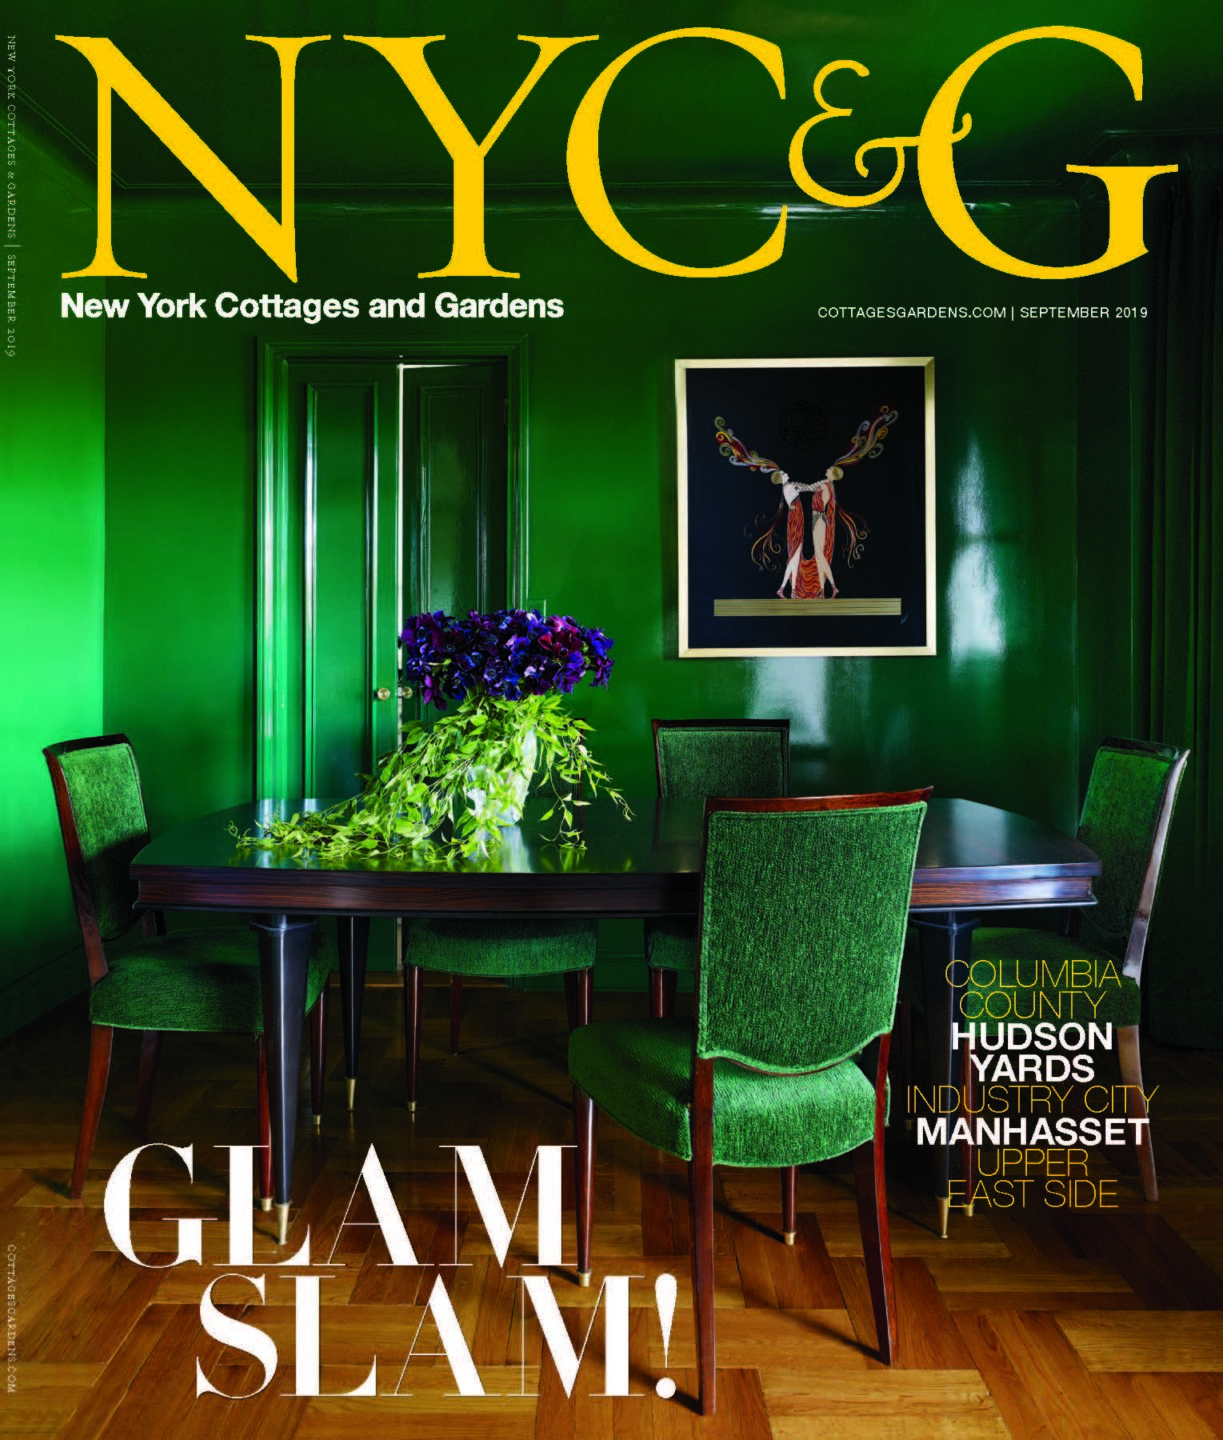 nyc-and-g-nicole-fuller-press-cover